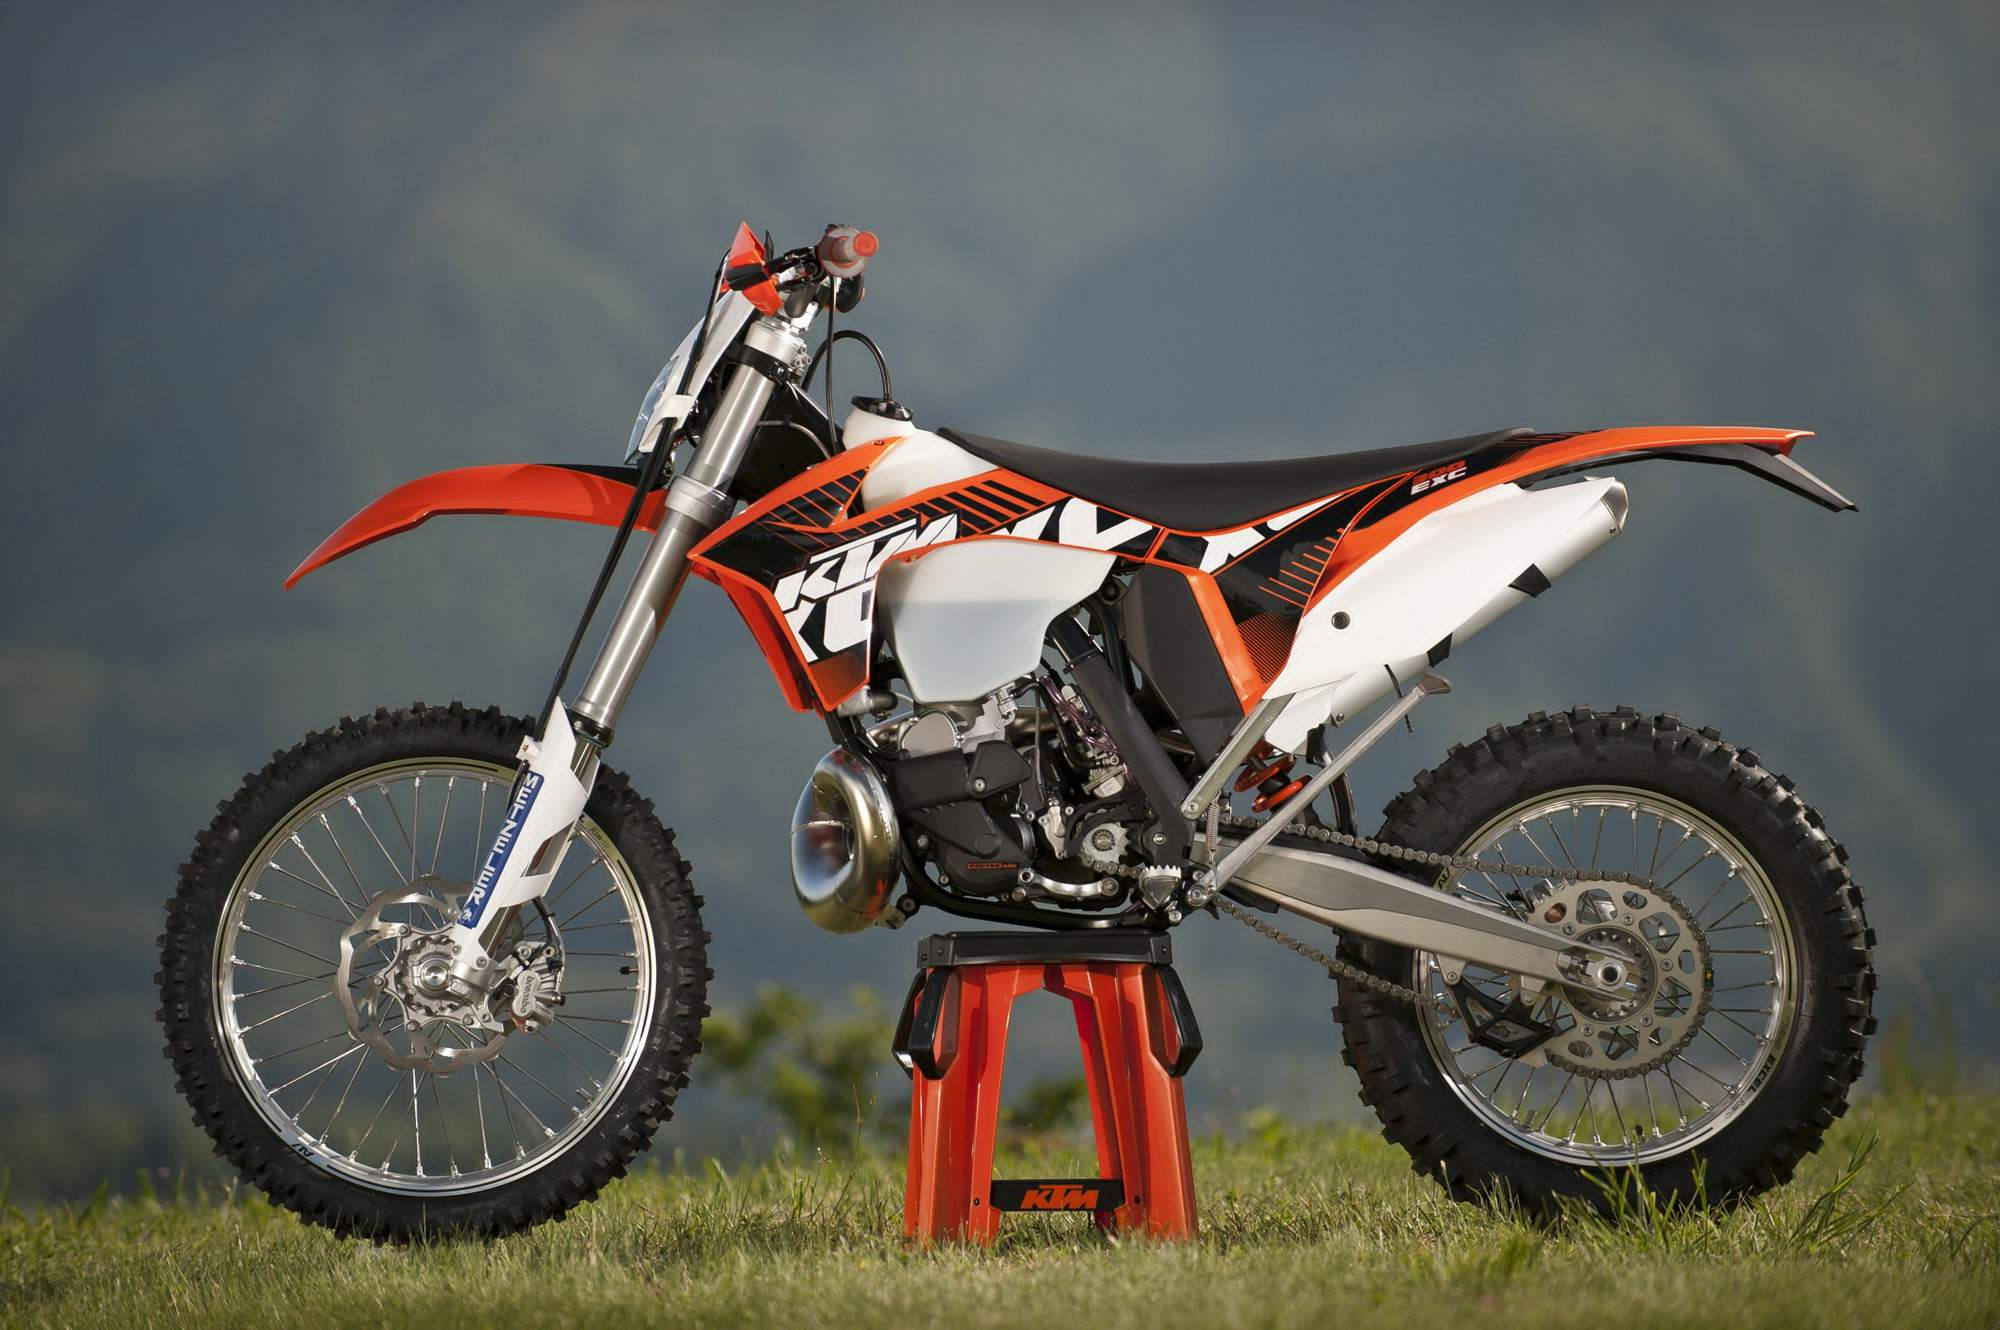 KTM 300 EXC-E Enduro For Sale Specifications, Price and Images